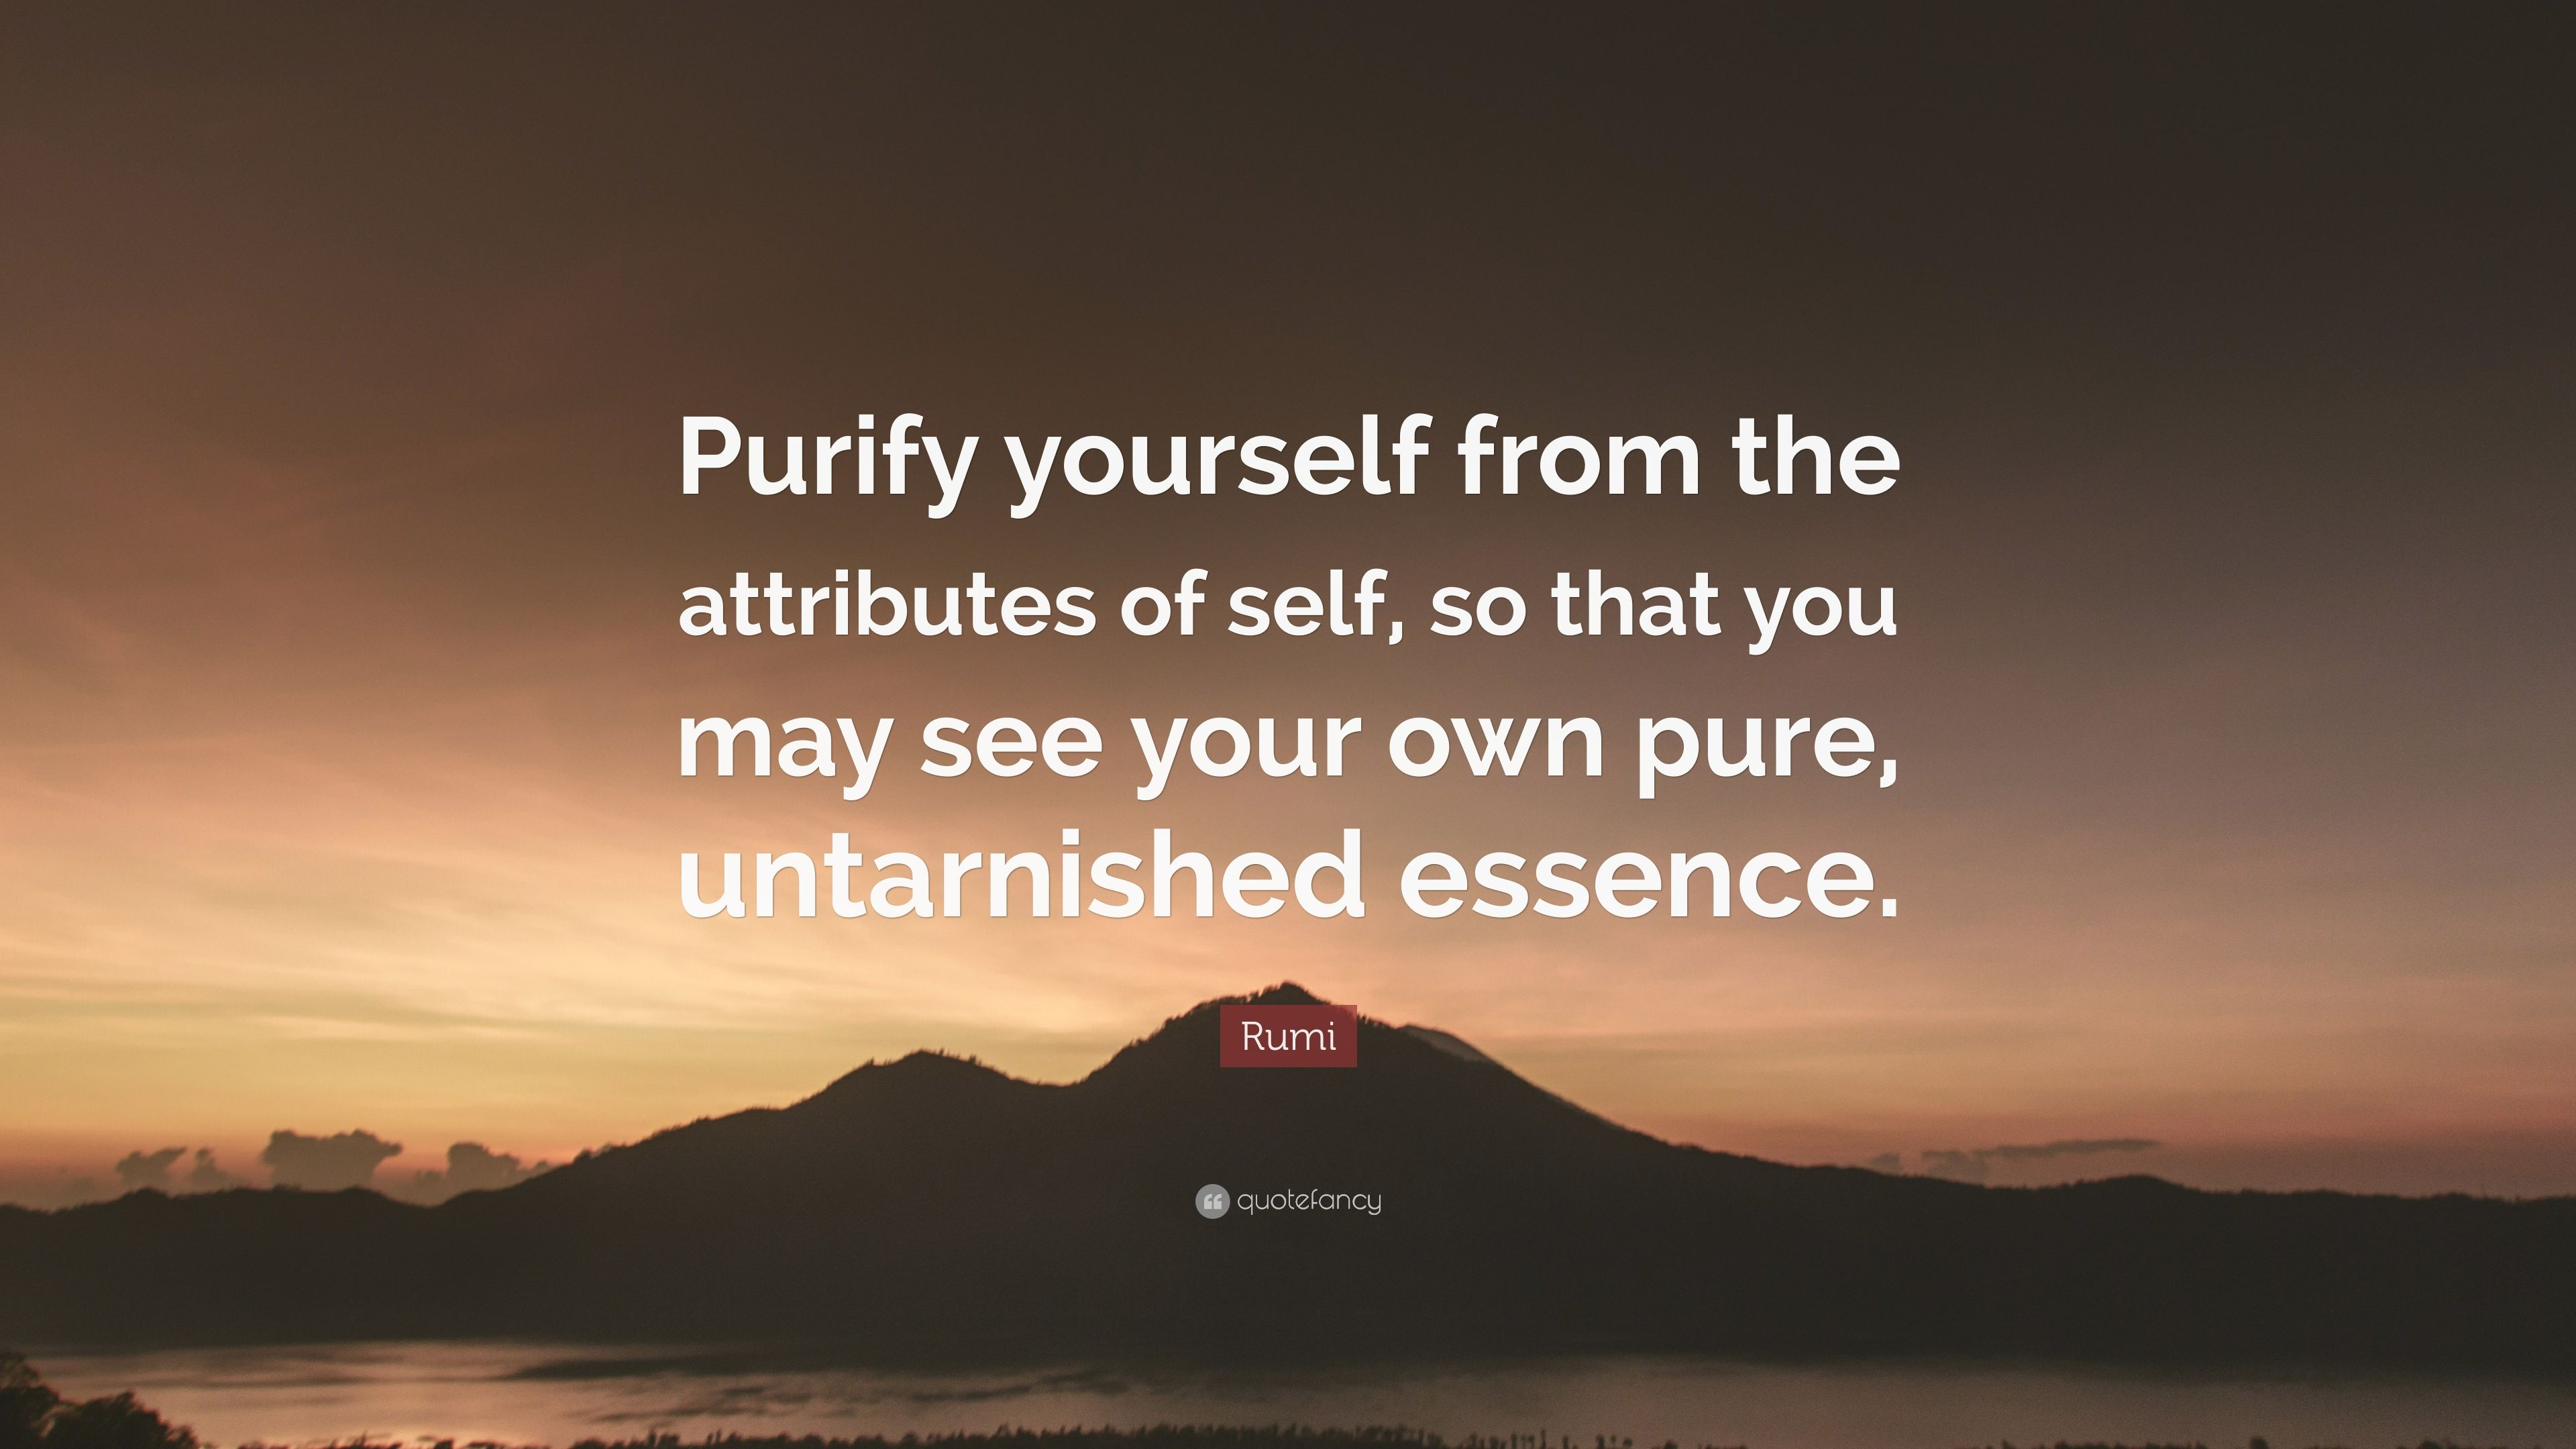 Rumi Quote Purify Yourself From The Attributes Of Self So That